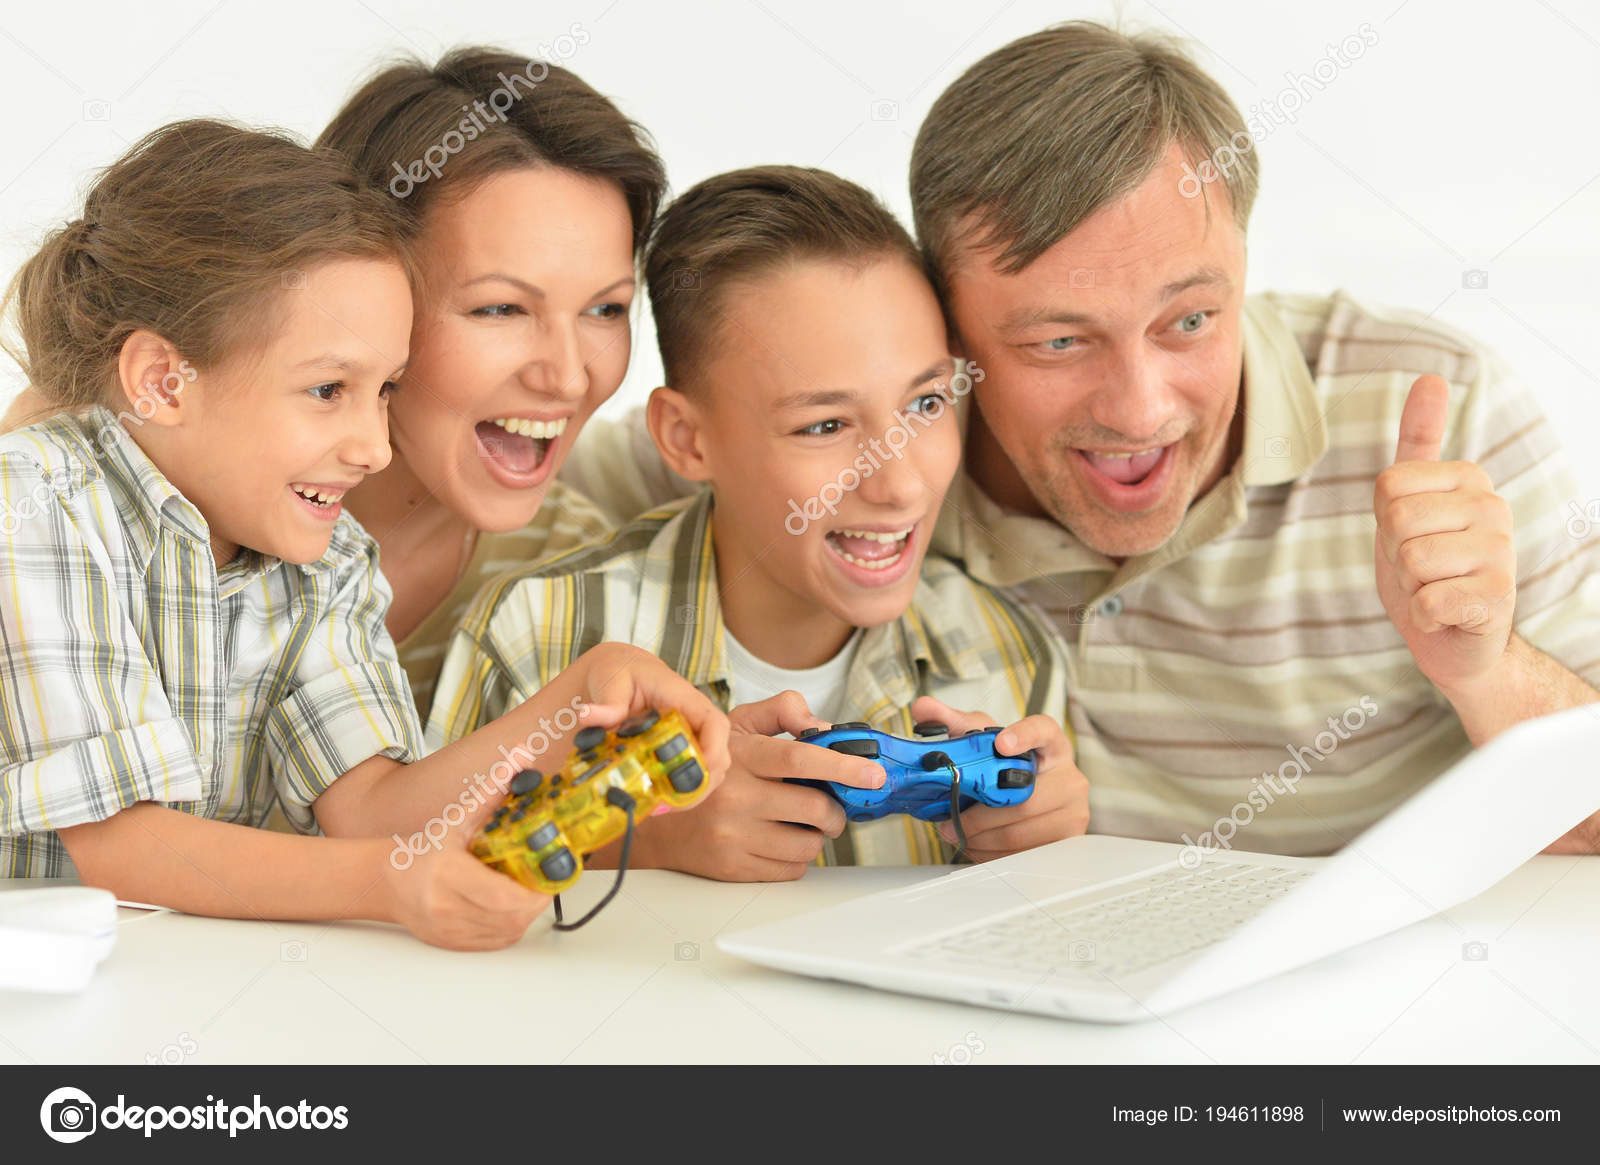 Computer Game Addiction Concept Stock Images - Image: 15817104